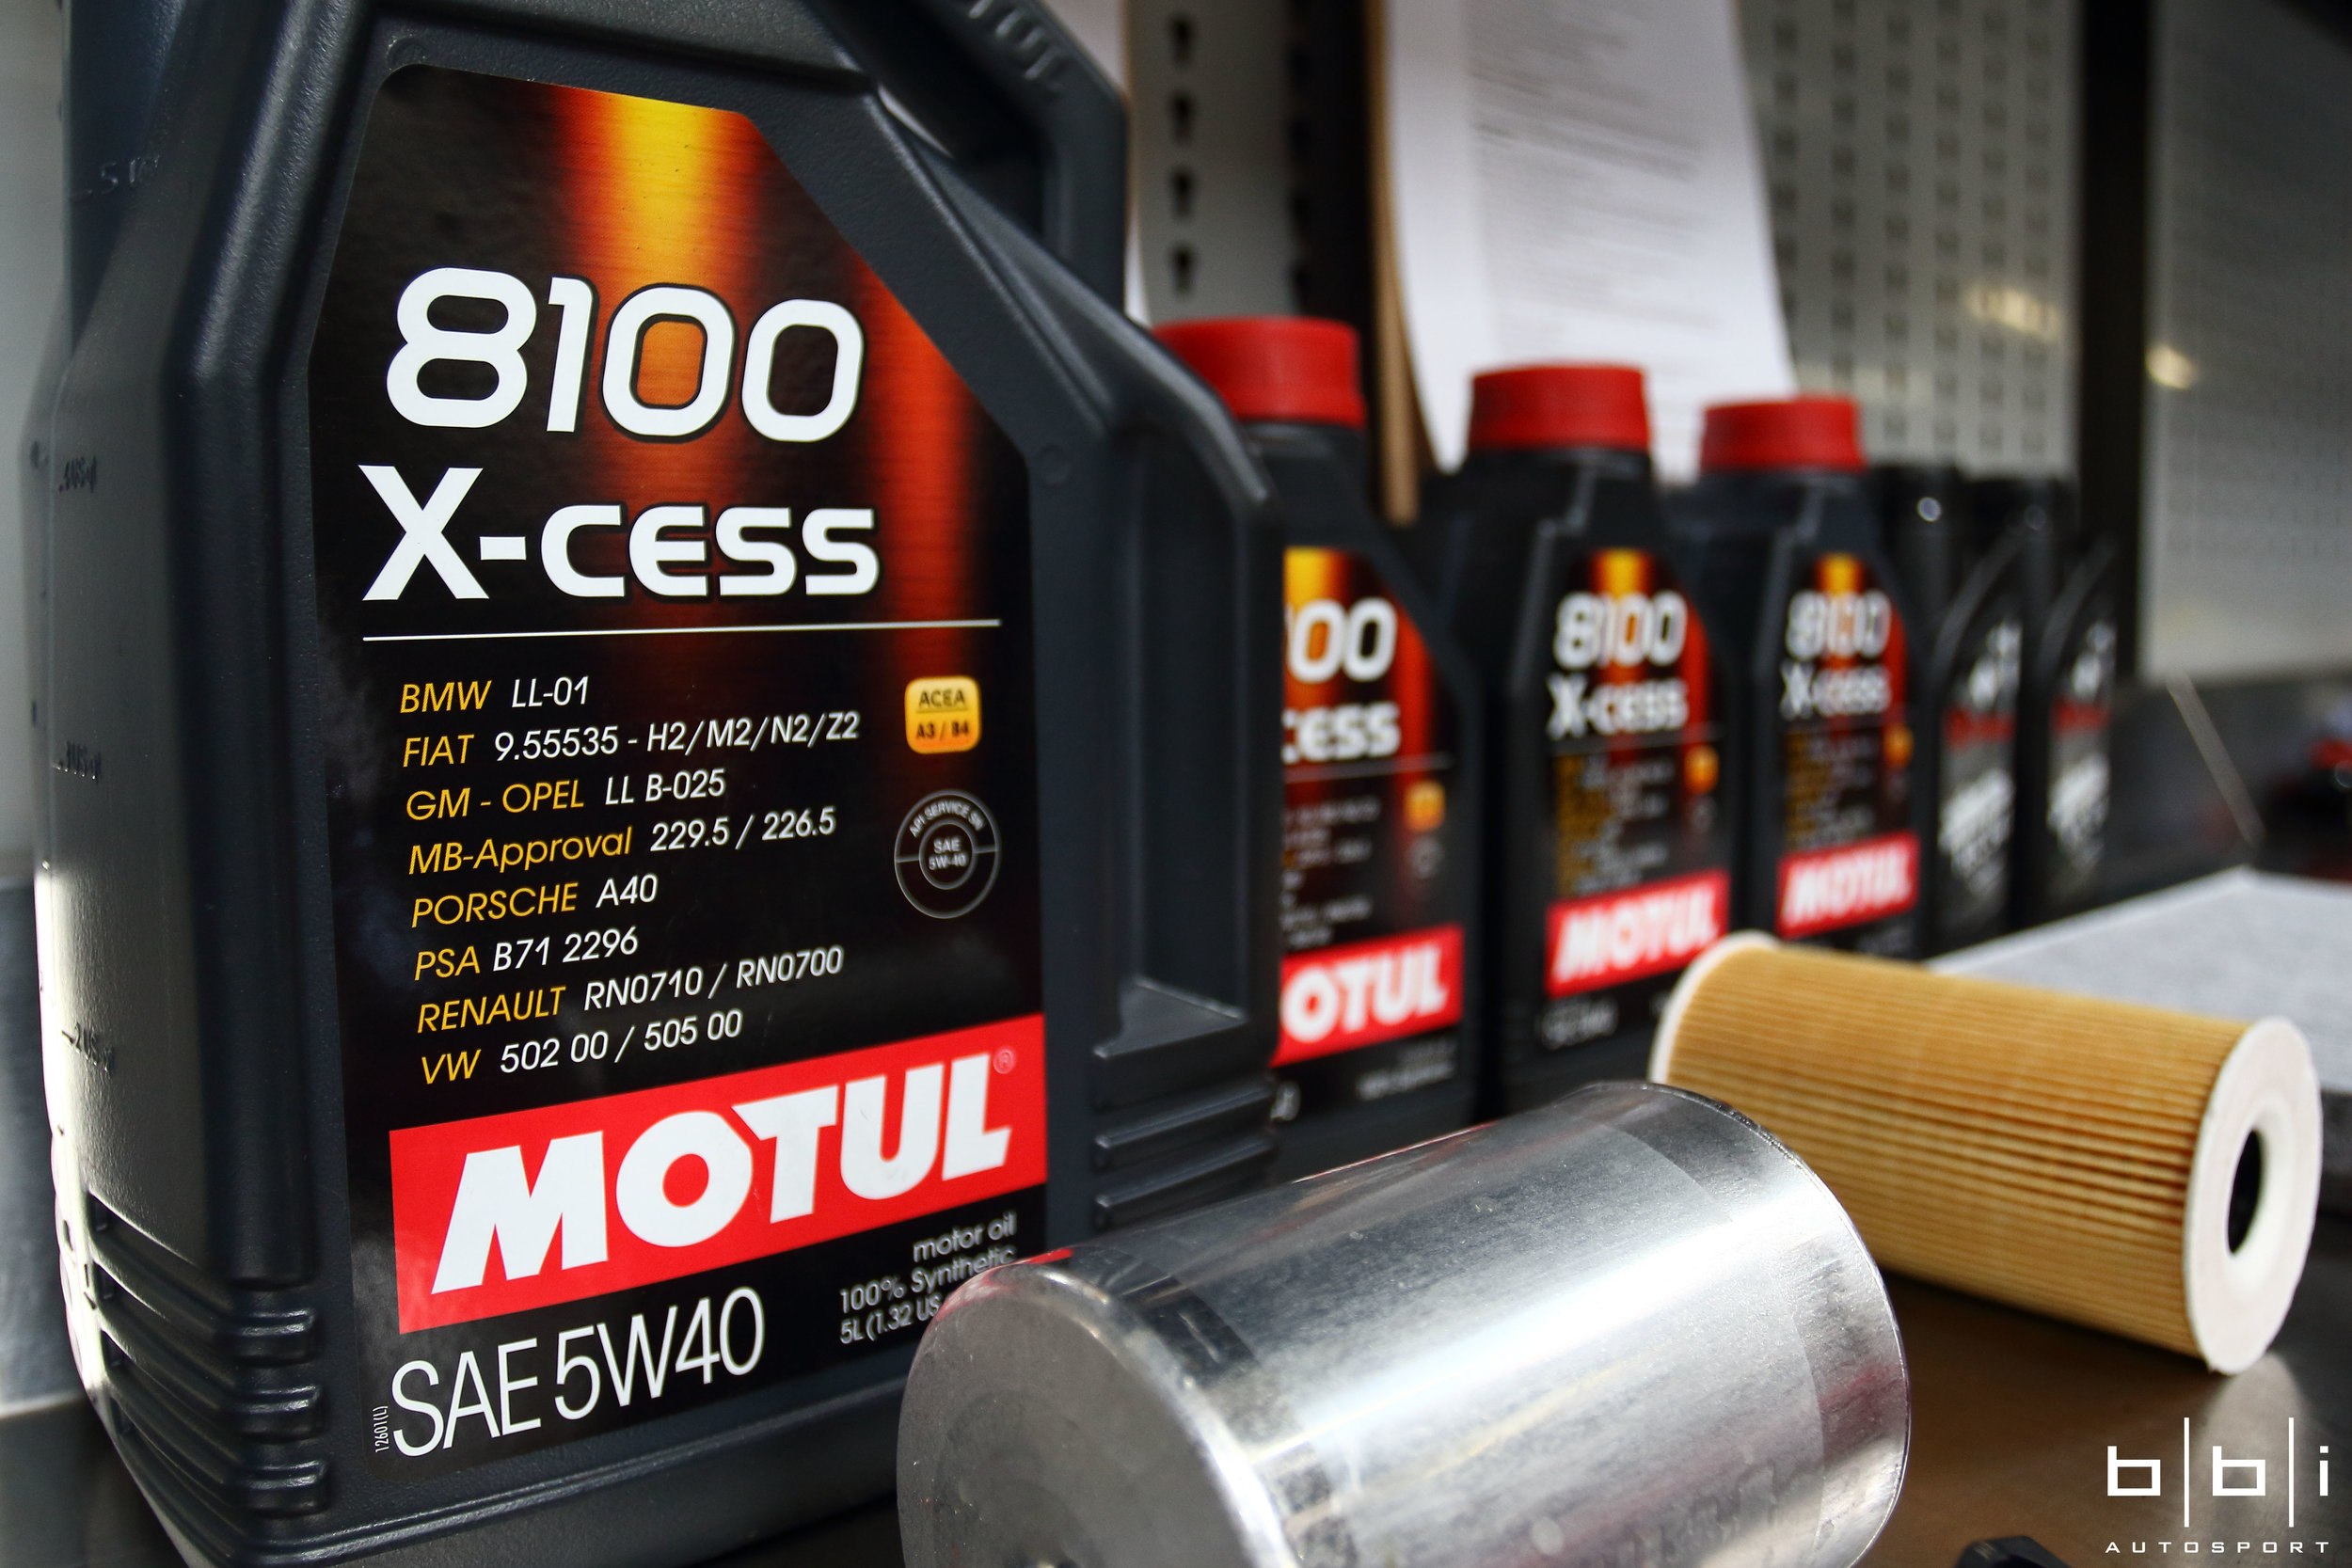 We used the Motul fully synthetic engine oil instead for the improved performance and protection. Other grades of Motul and high performance brands are also available.